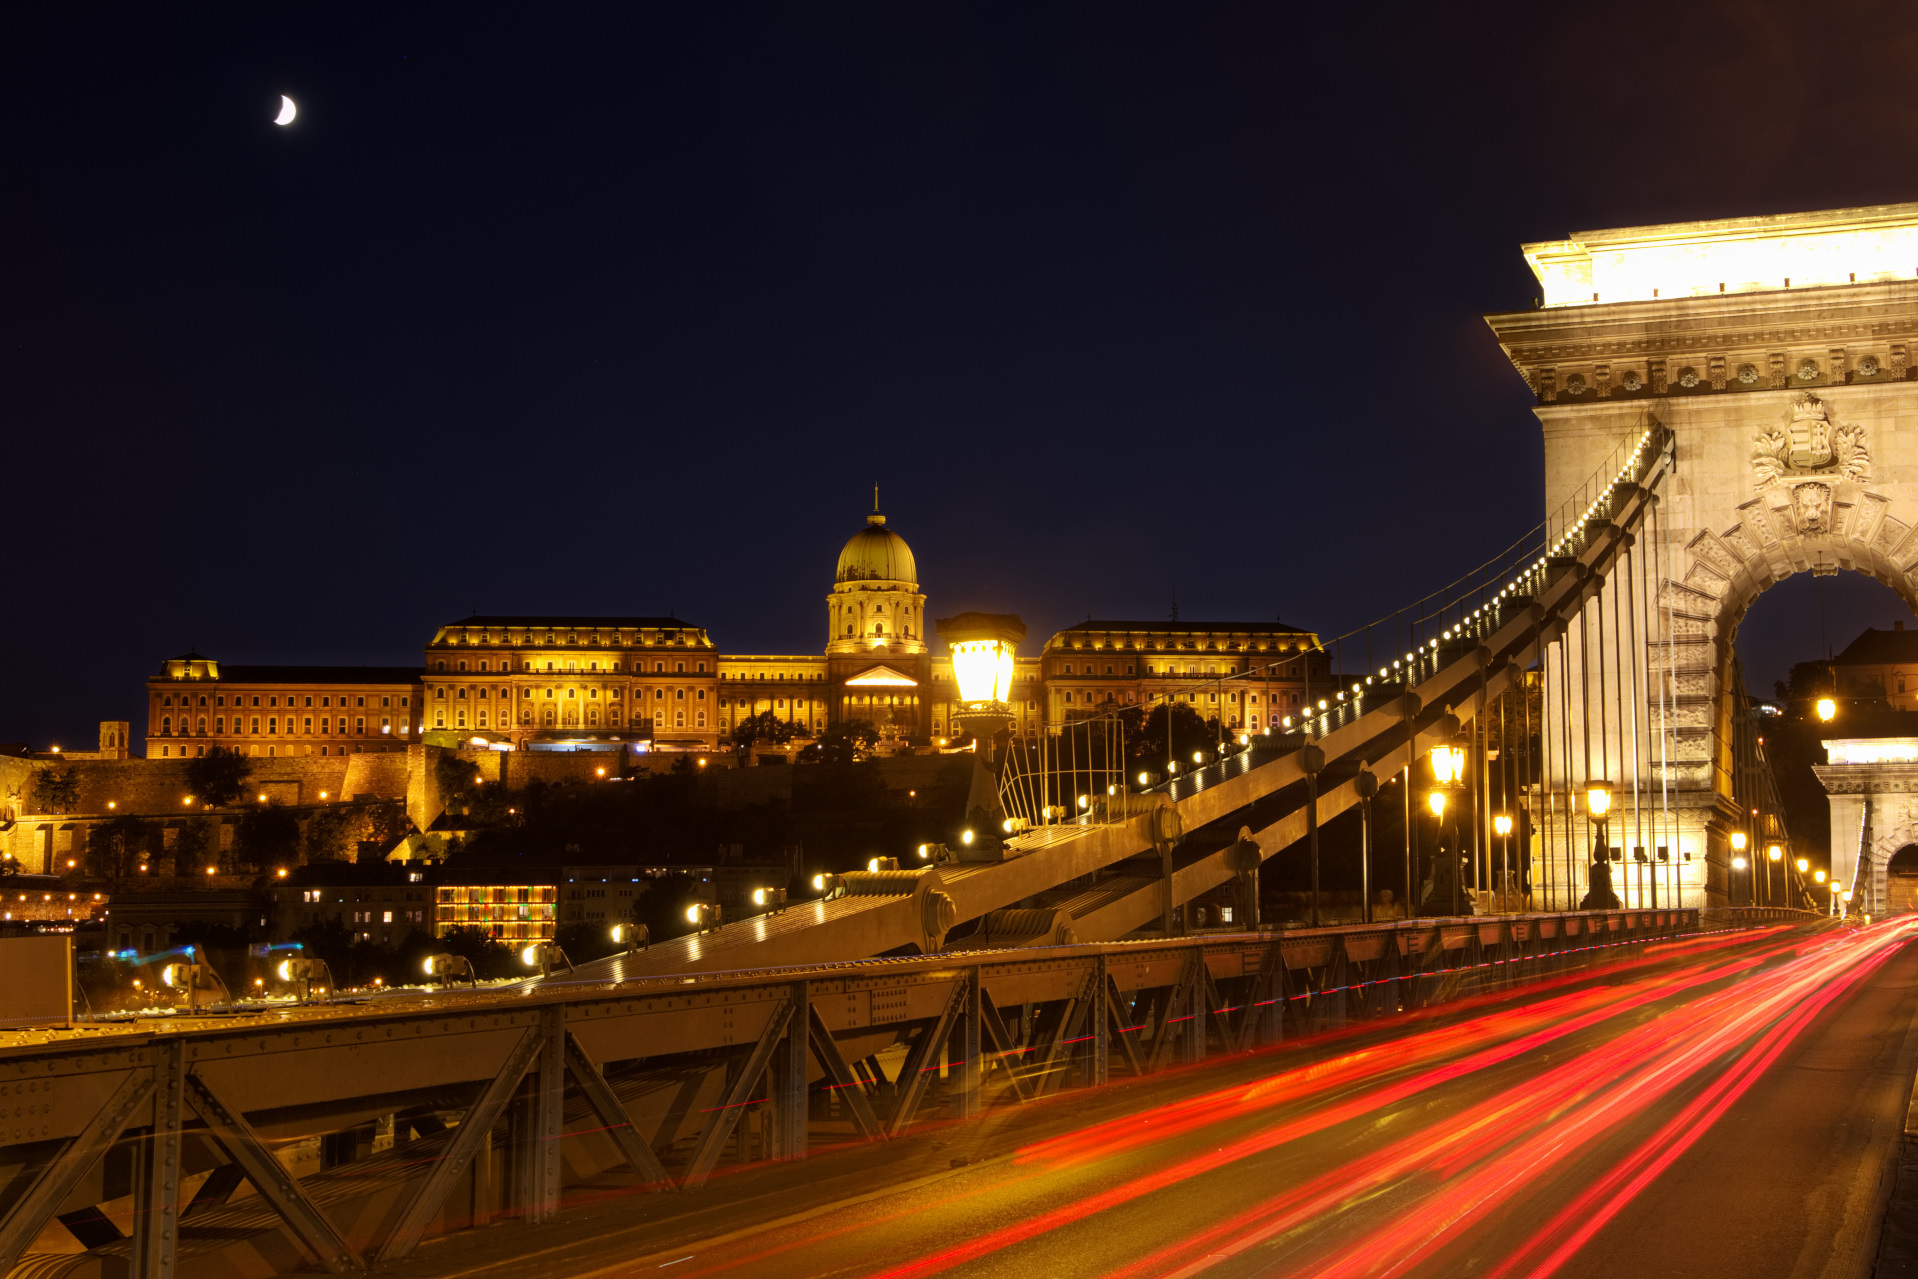 Evening  in  the town, Hungary